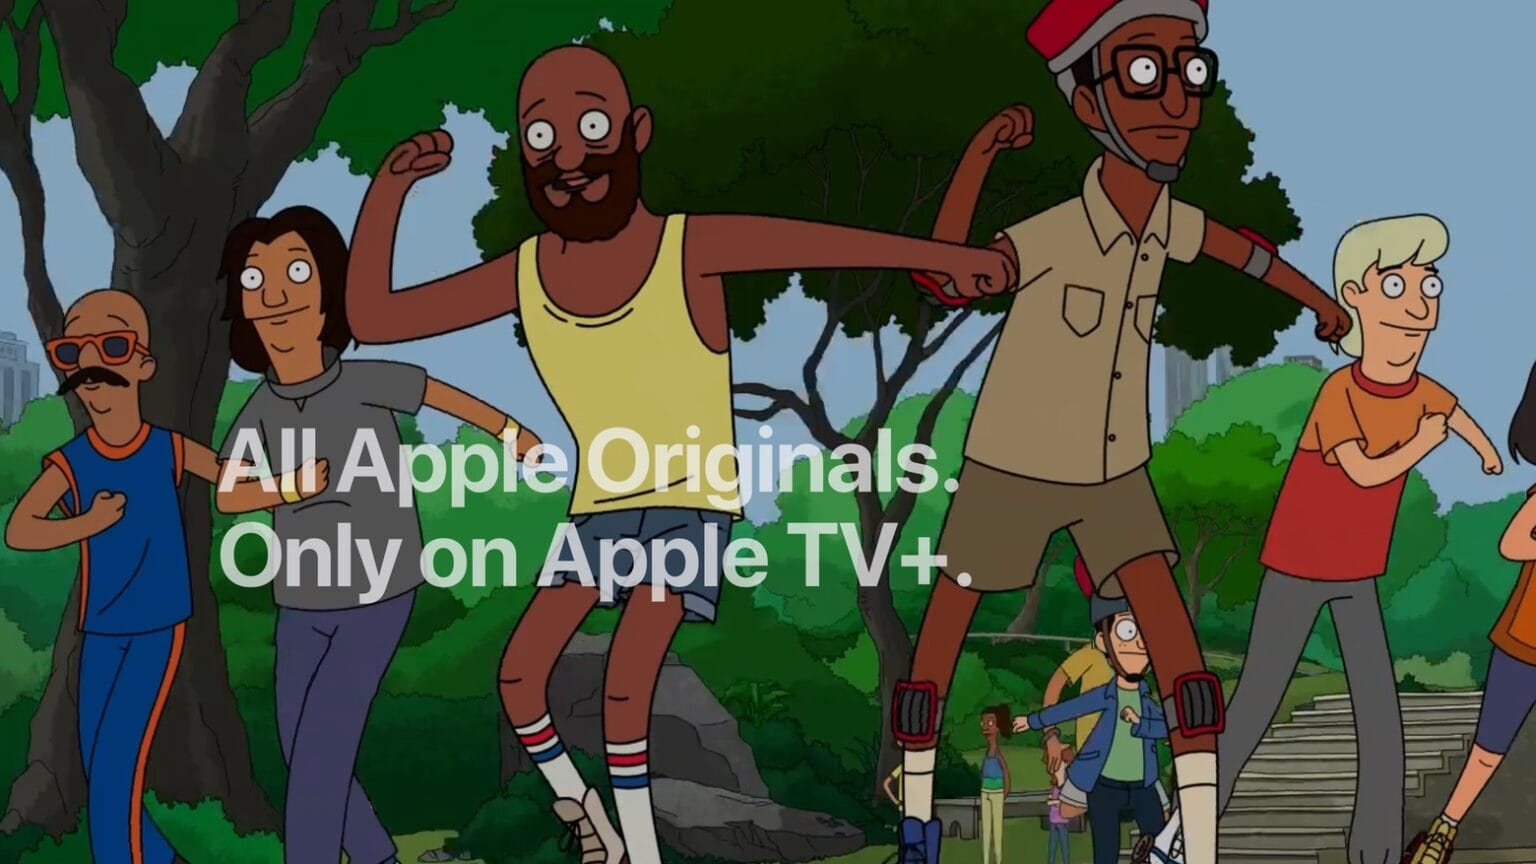 Apple TV+ has yet to cut into the lead of well-established streaming video services.